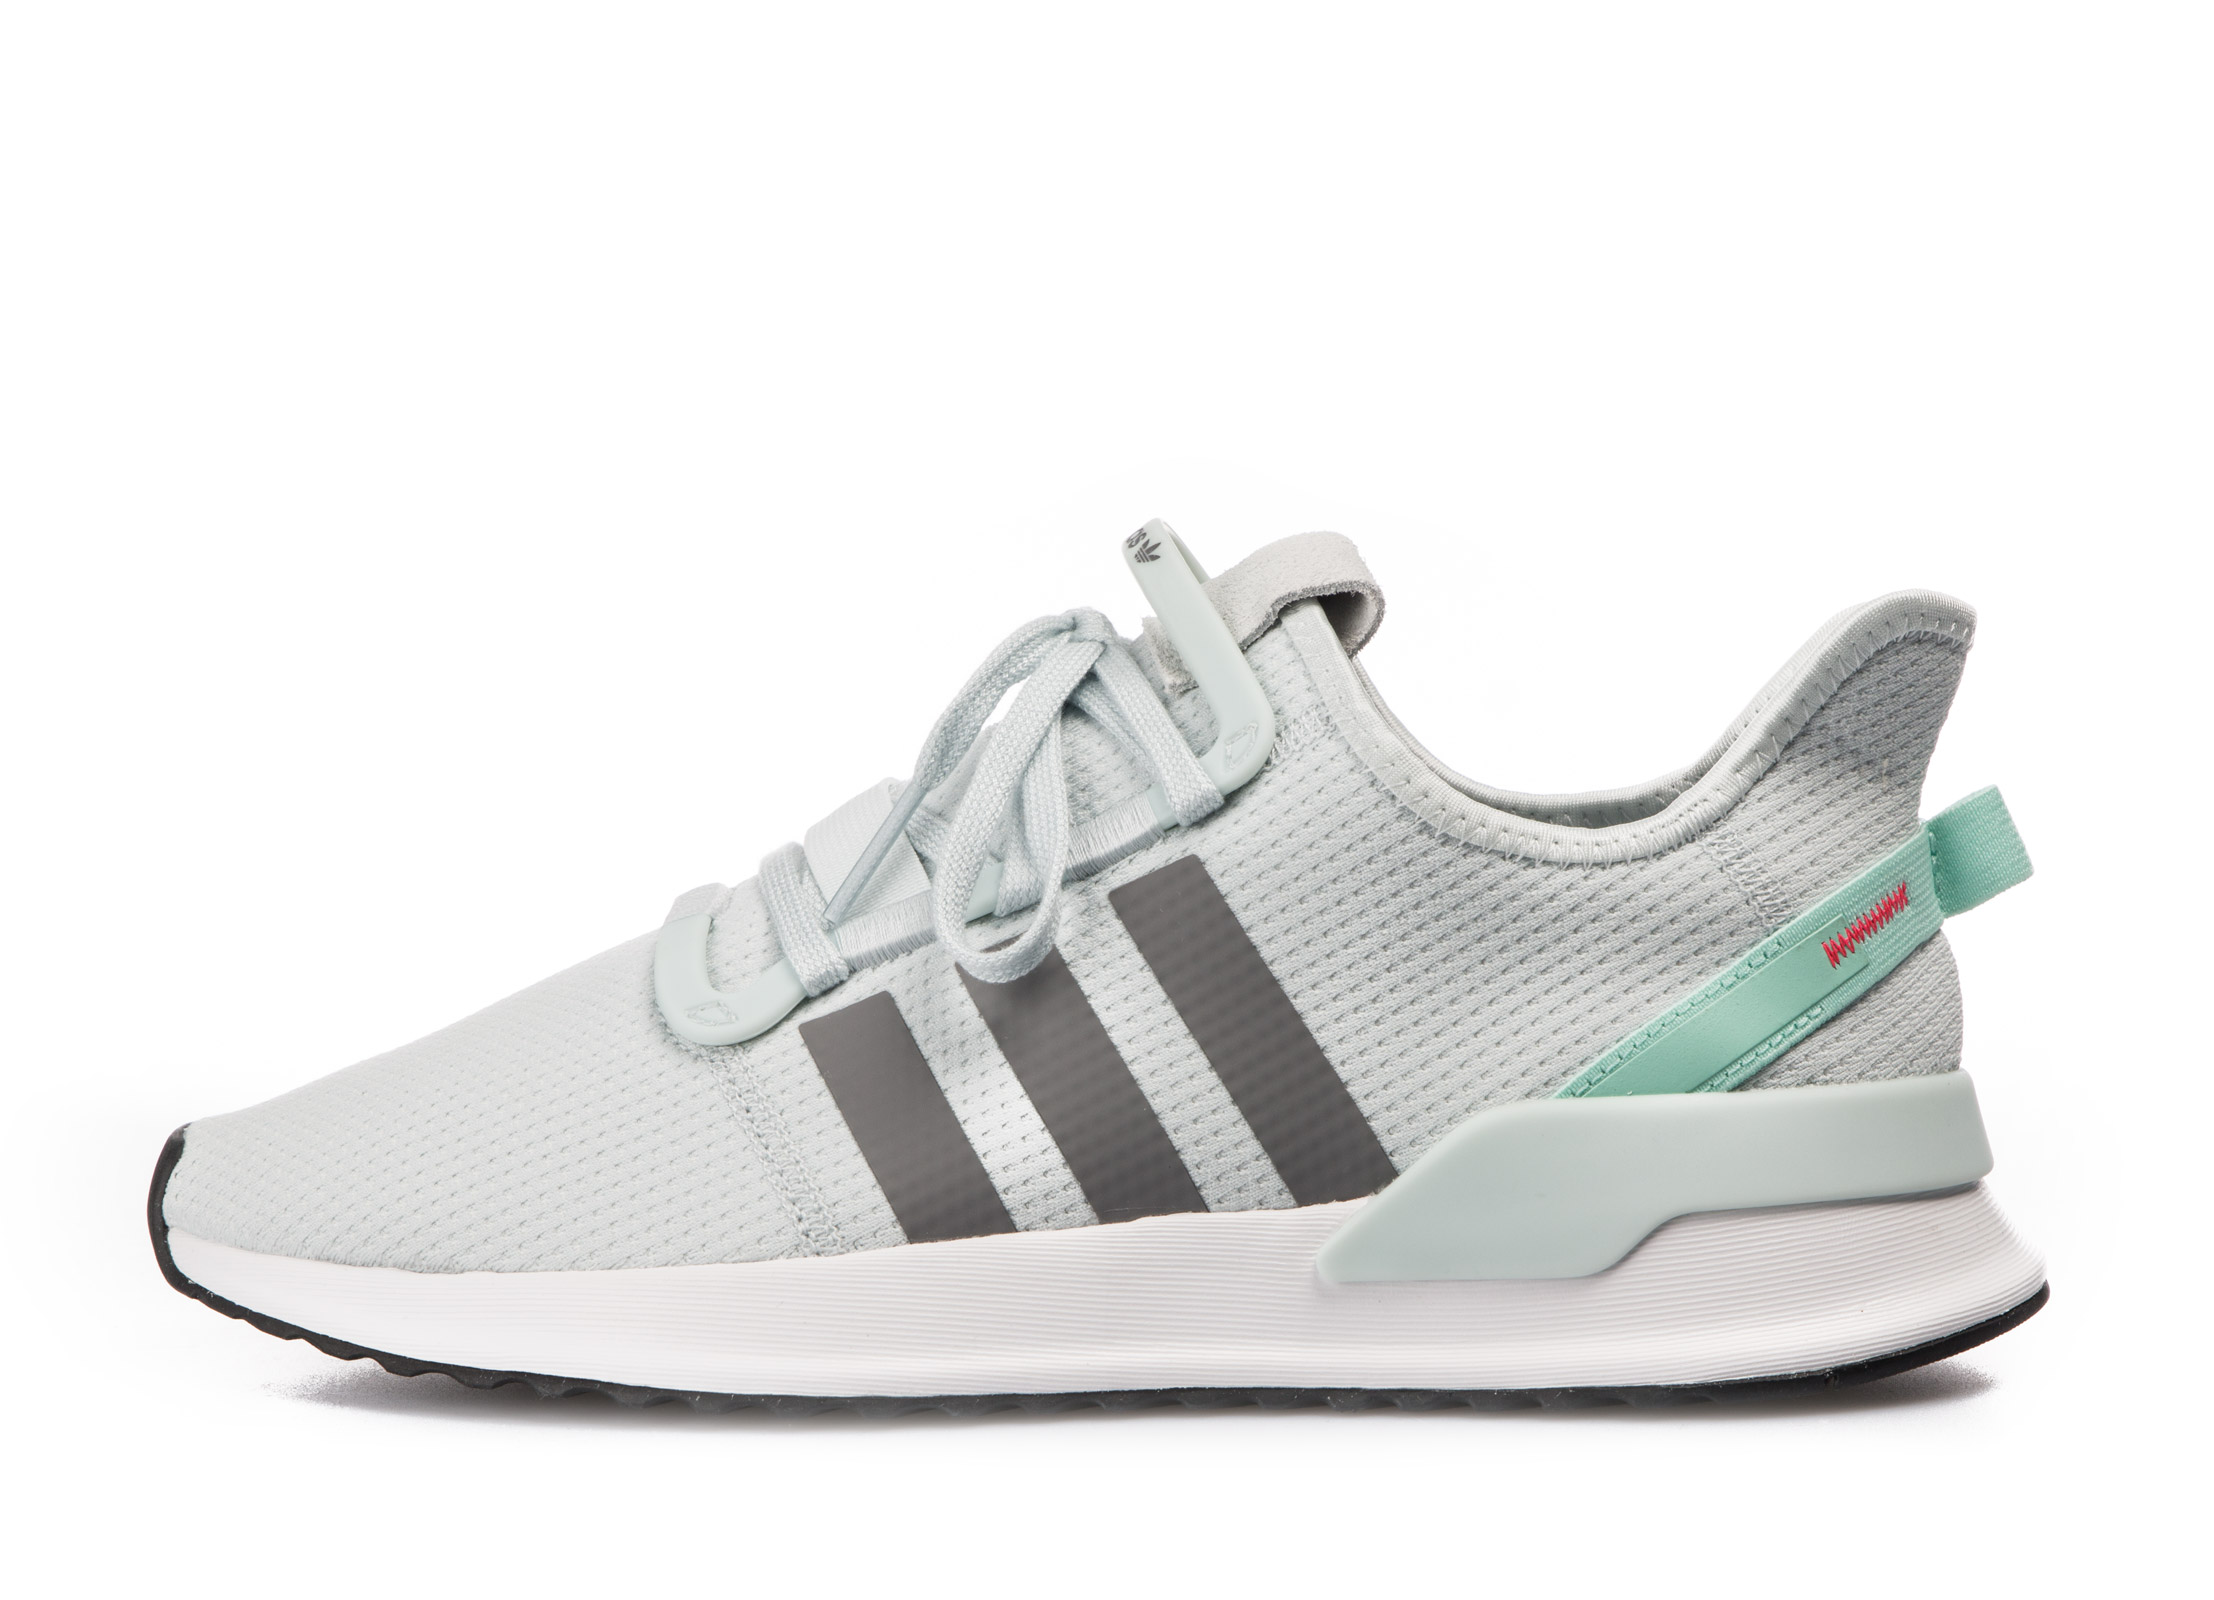 adidas Originals U PATH RUN G27638 Οινοπνευματί